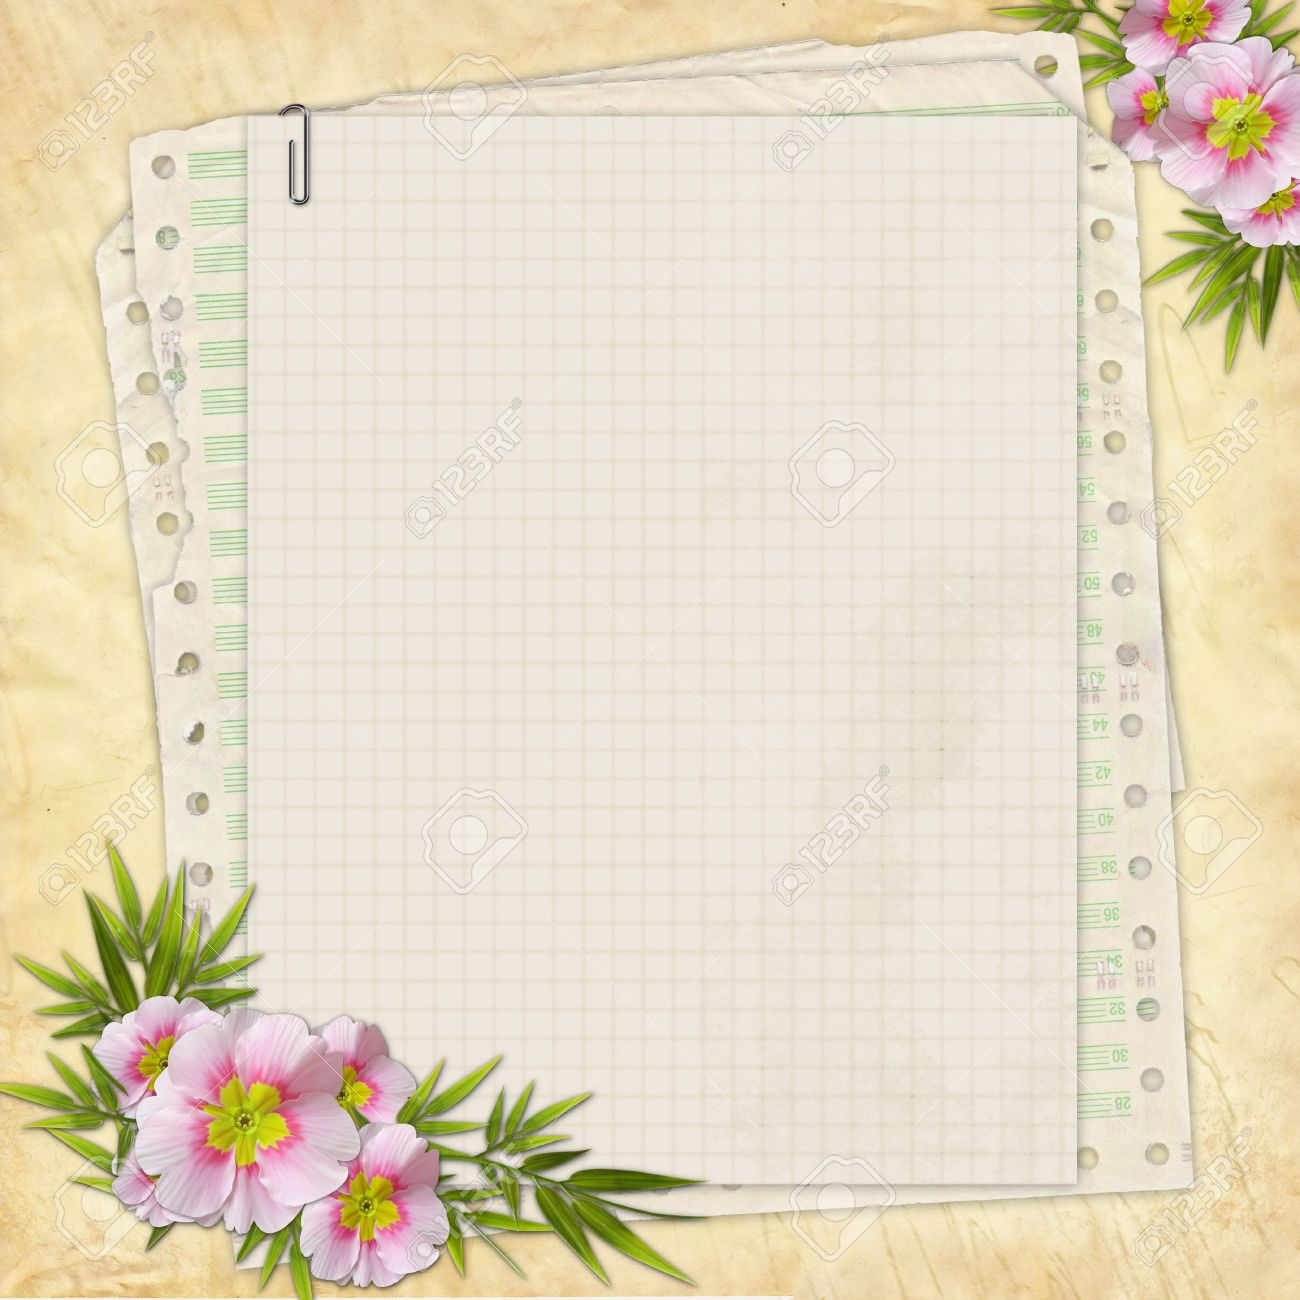 Scrapbook paper designs - Grunge Paper Design For Information In Scrapbooking Style Stock Photo 6606242